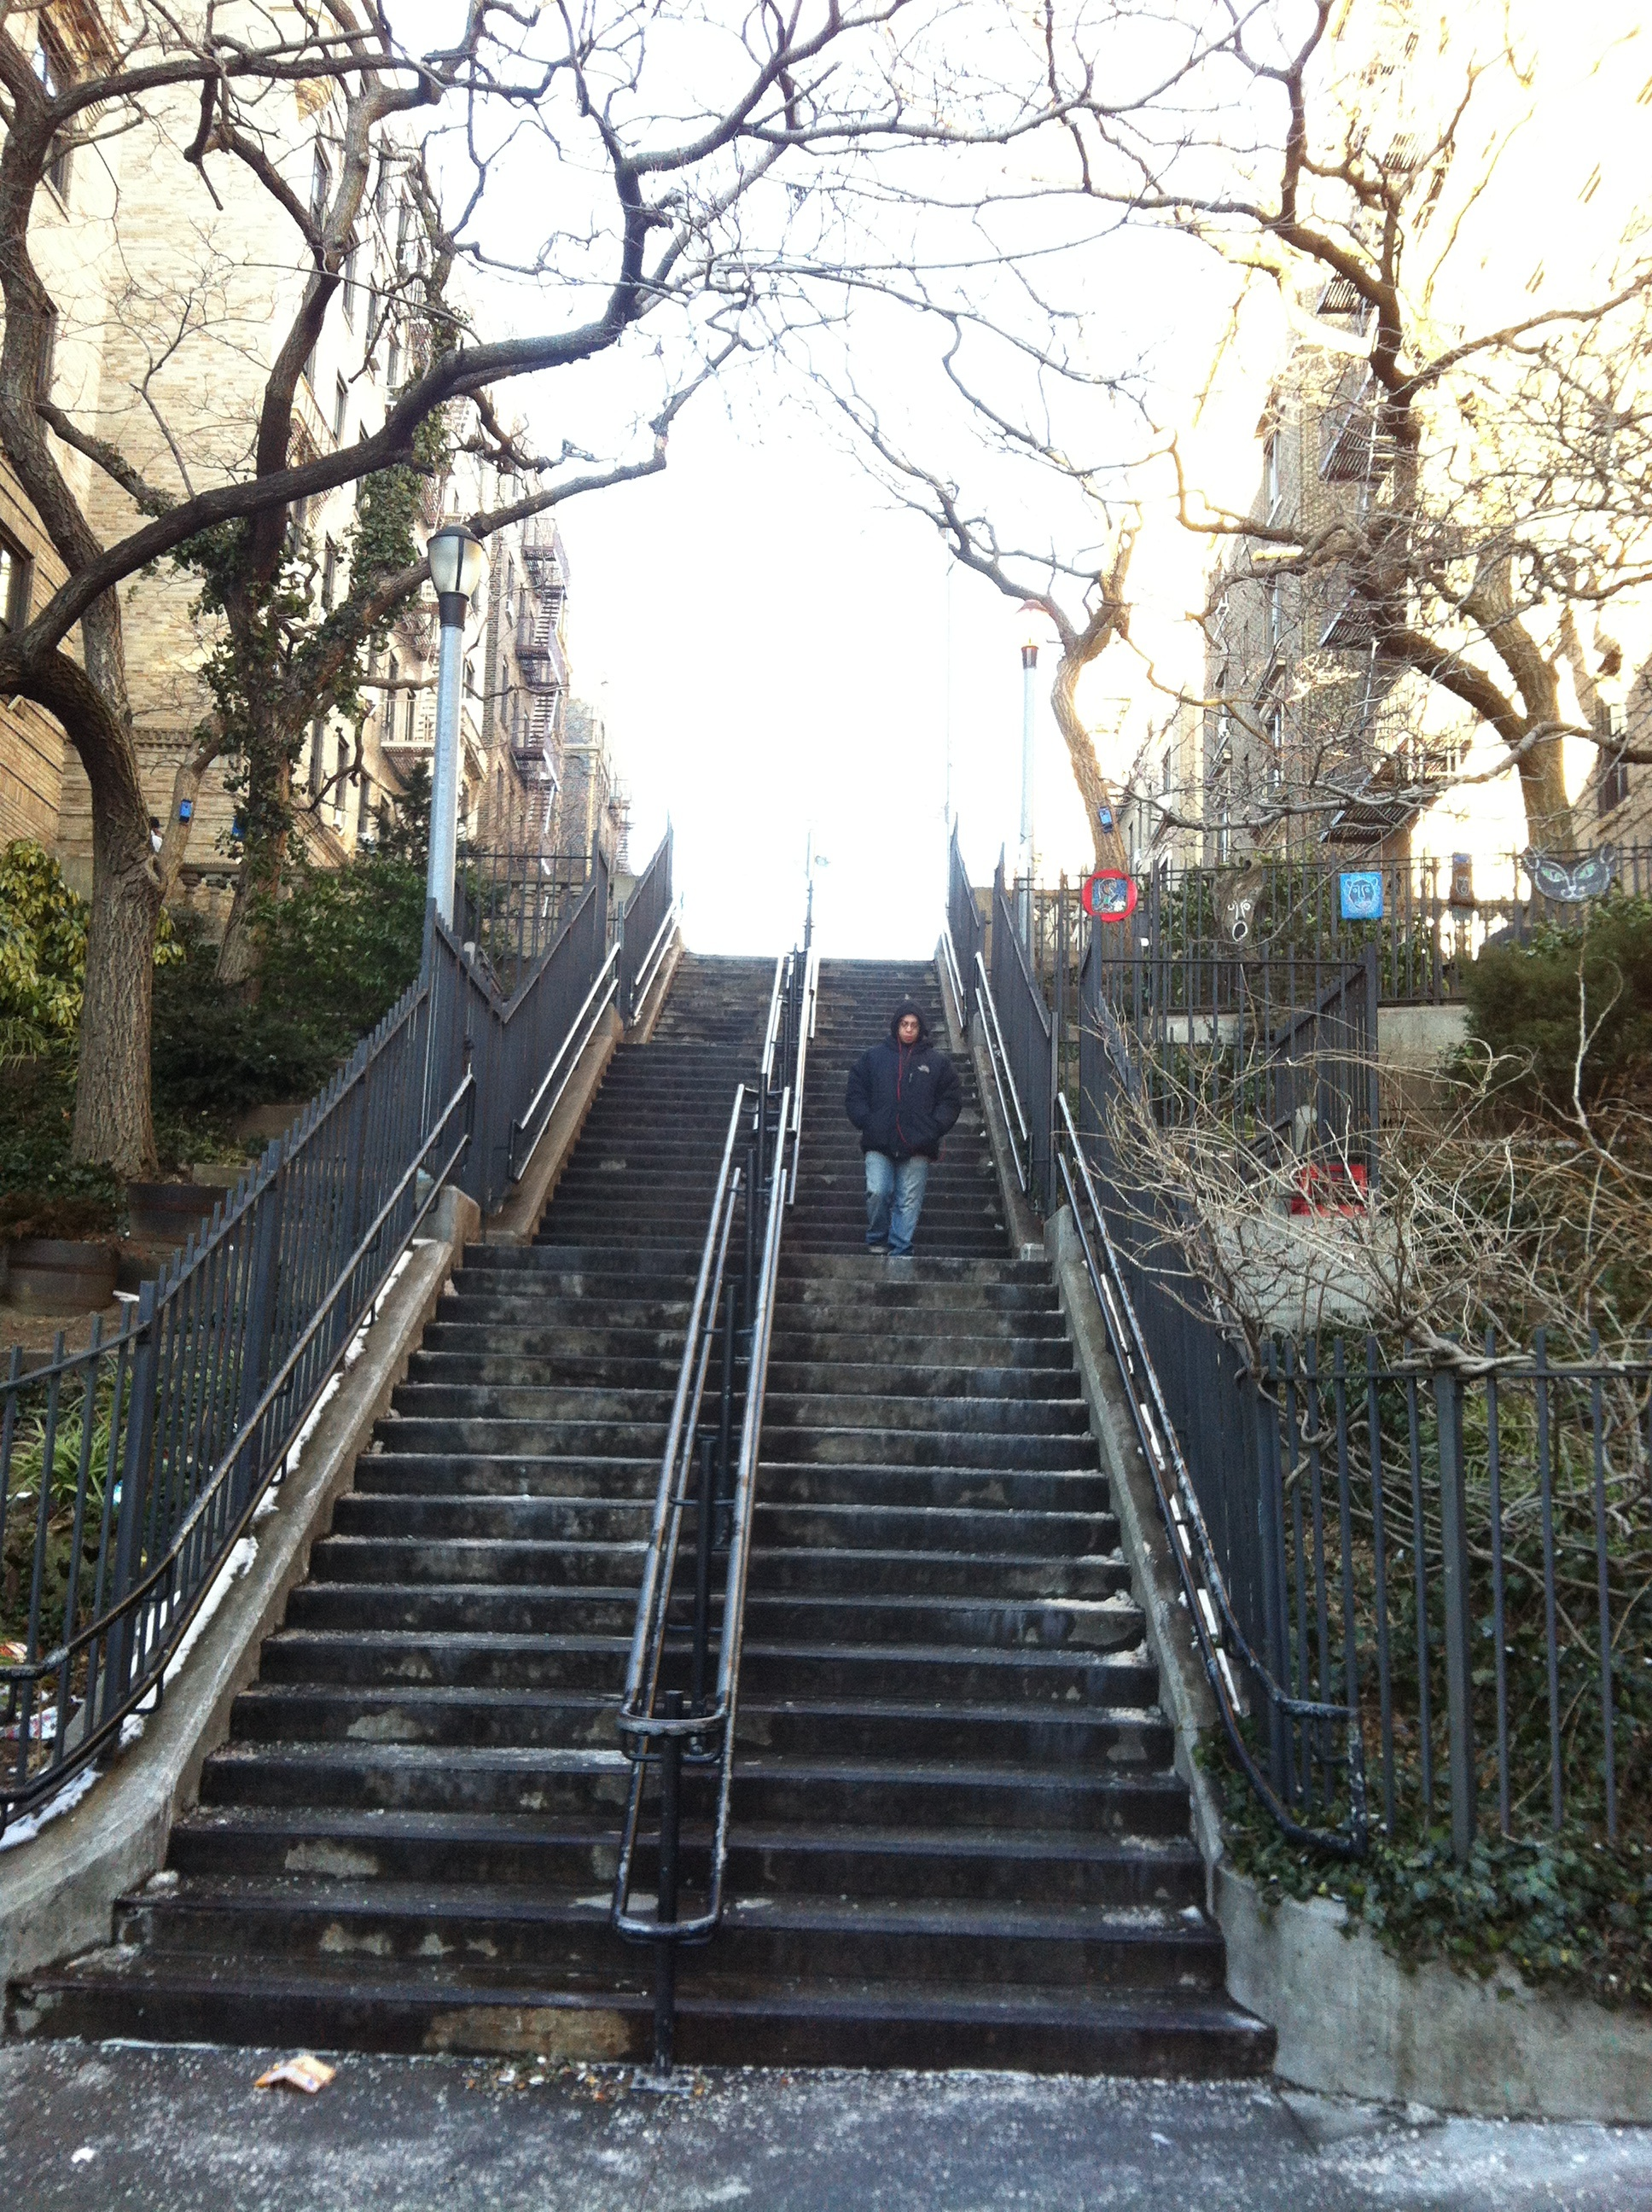 Charmant To Access Pinehurst Avenue From 181st Street, One Must Climb A Three Tiered  Stairway. The Stairs Were Built In 1924. I Found The Staircase Accidentally  And ...